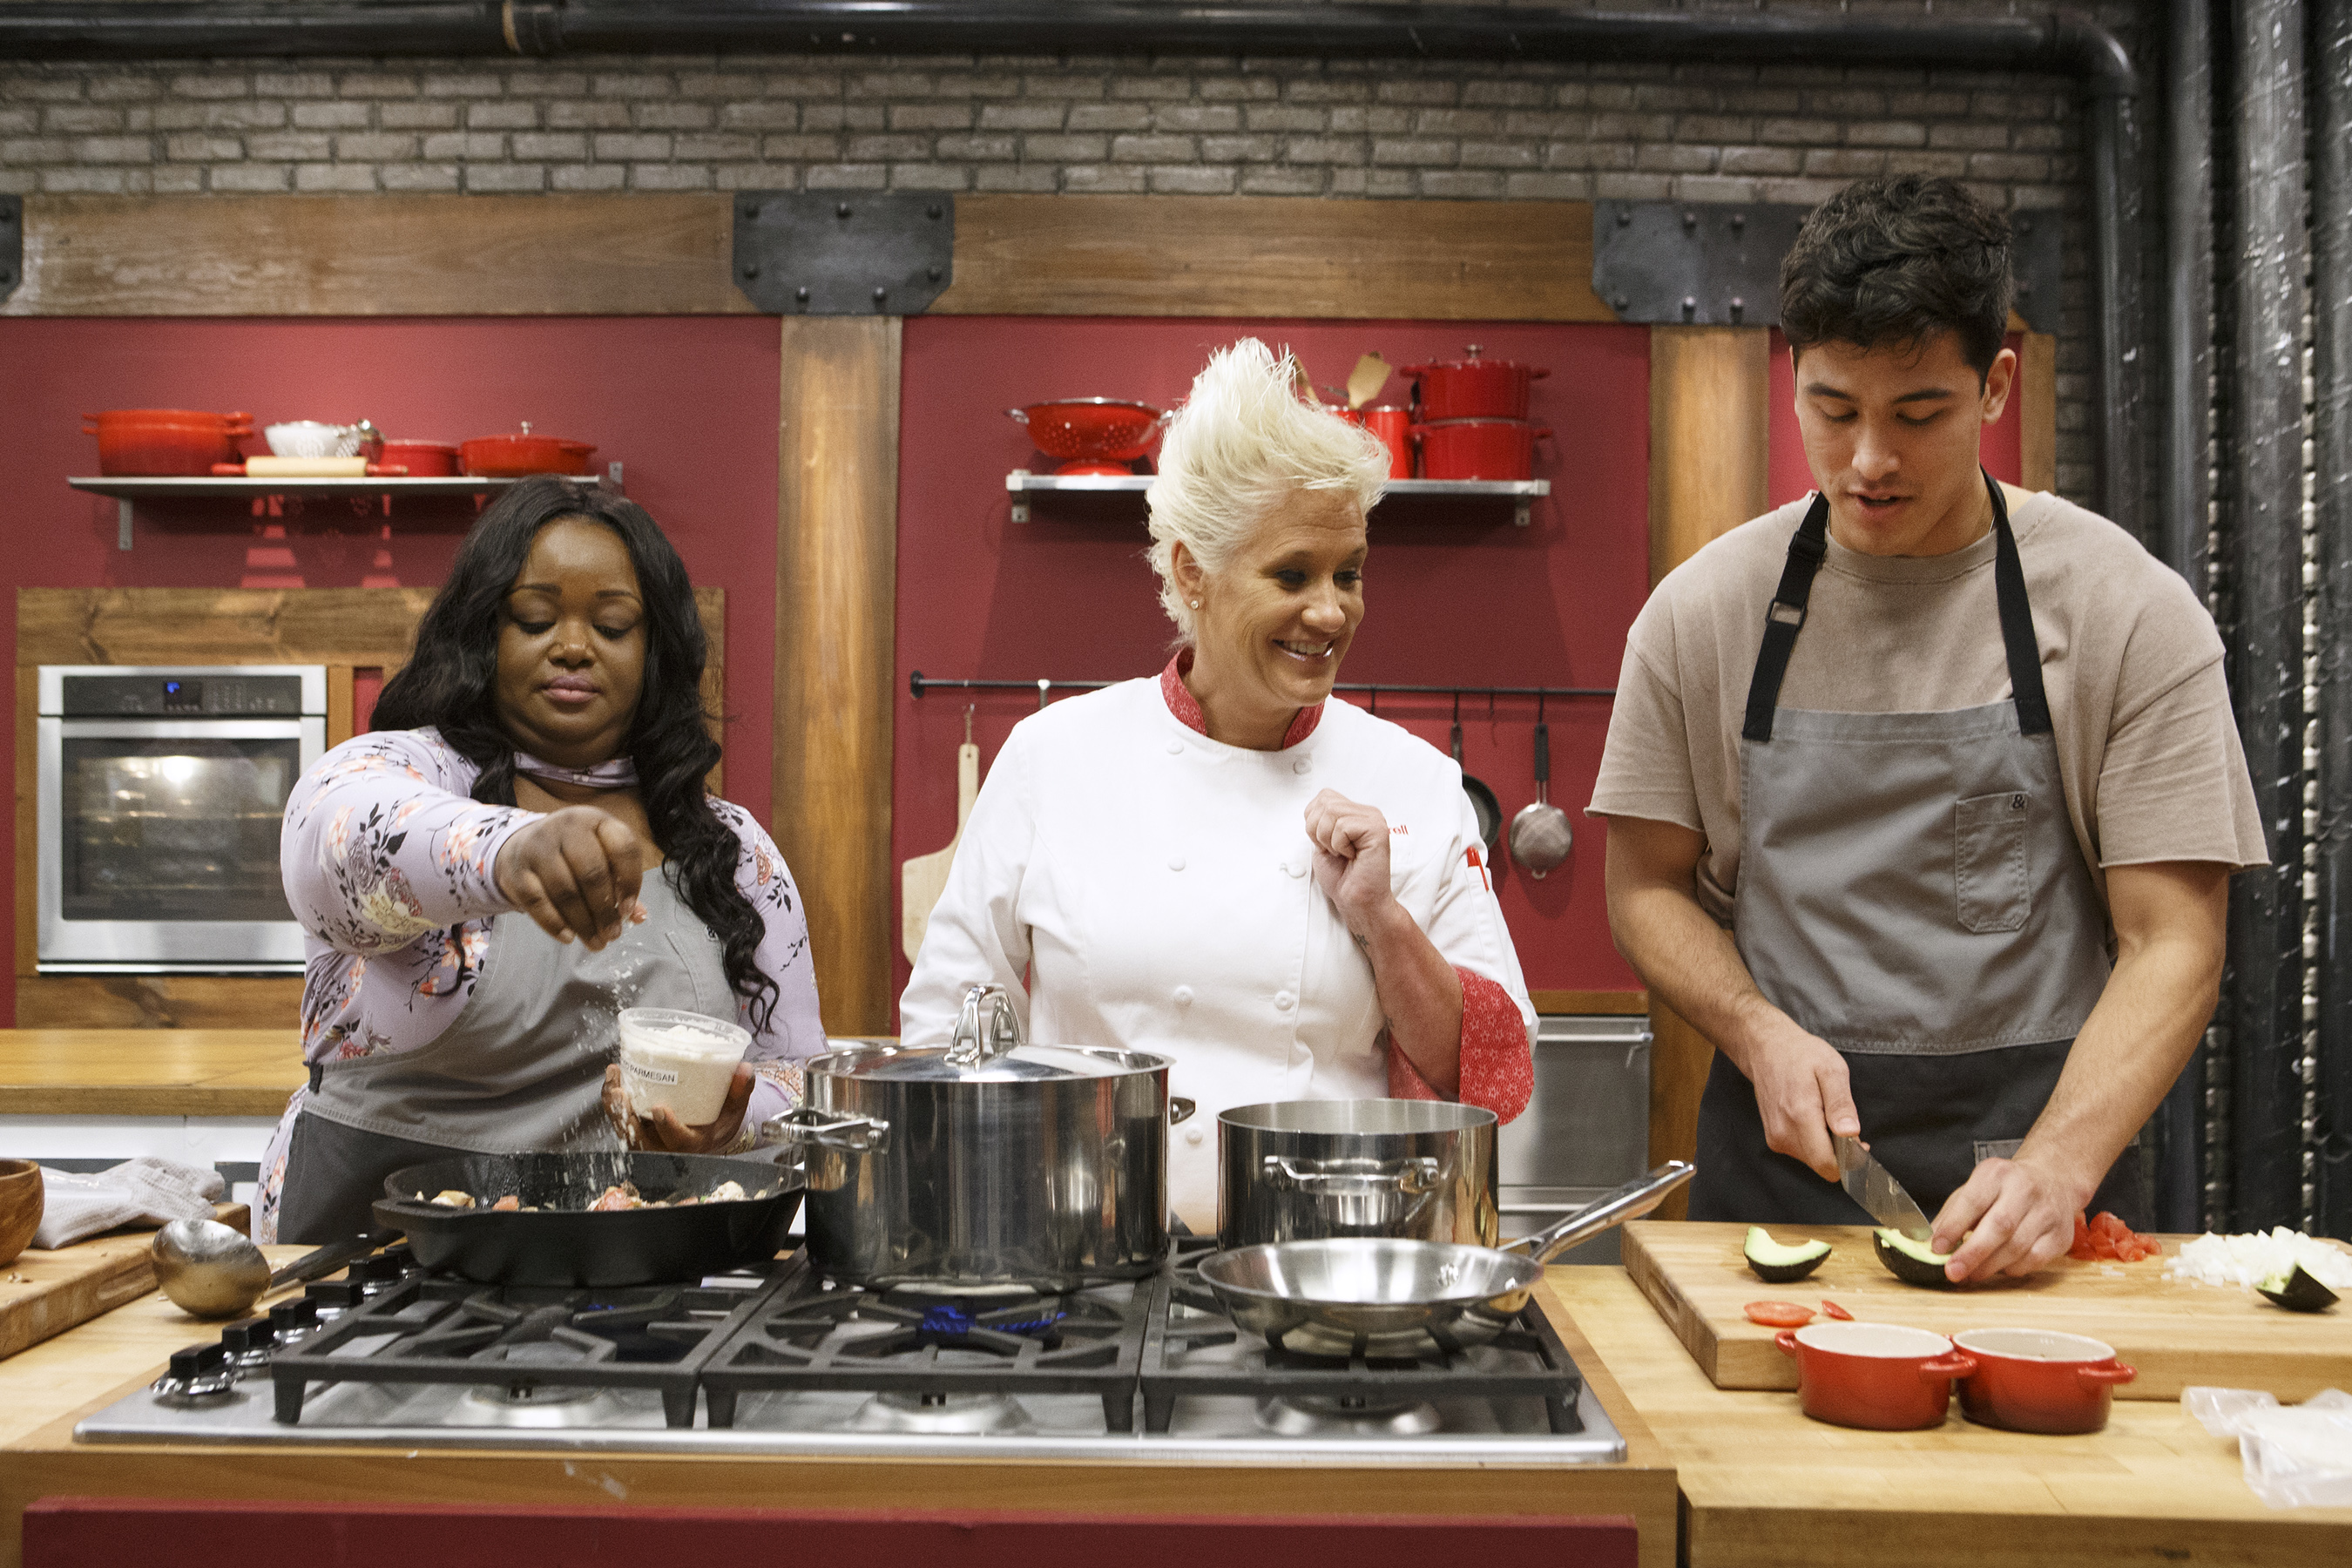 Mentor Anne Burrell checks in on recruits Janese Henry and Bradley Garcia as they cooks during the baseline challenge, as seen on Worst Cooks in America, Season 14. Source: Daniela Medina, Allied Integrated Marketing